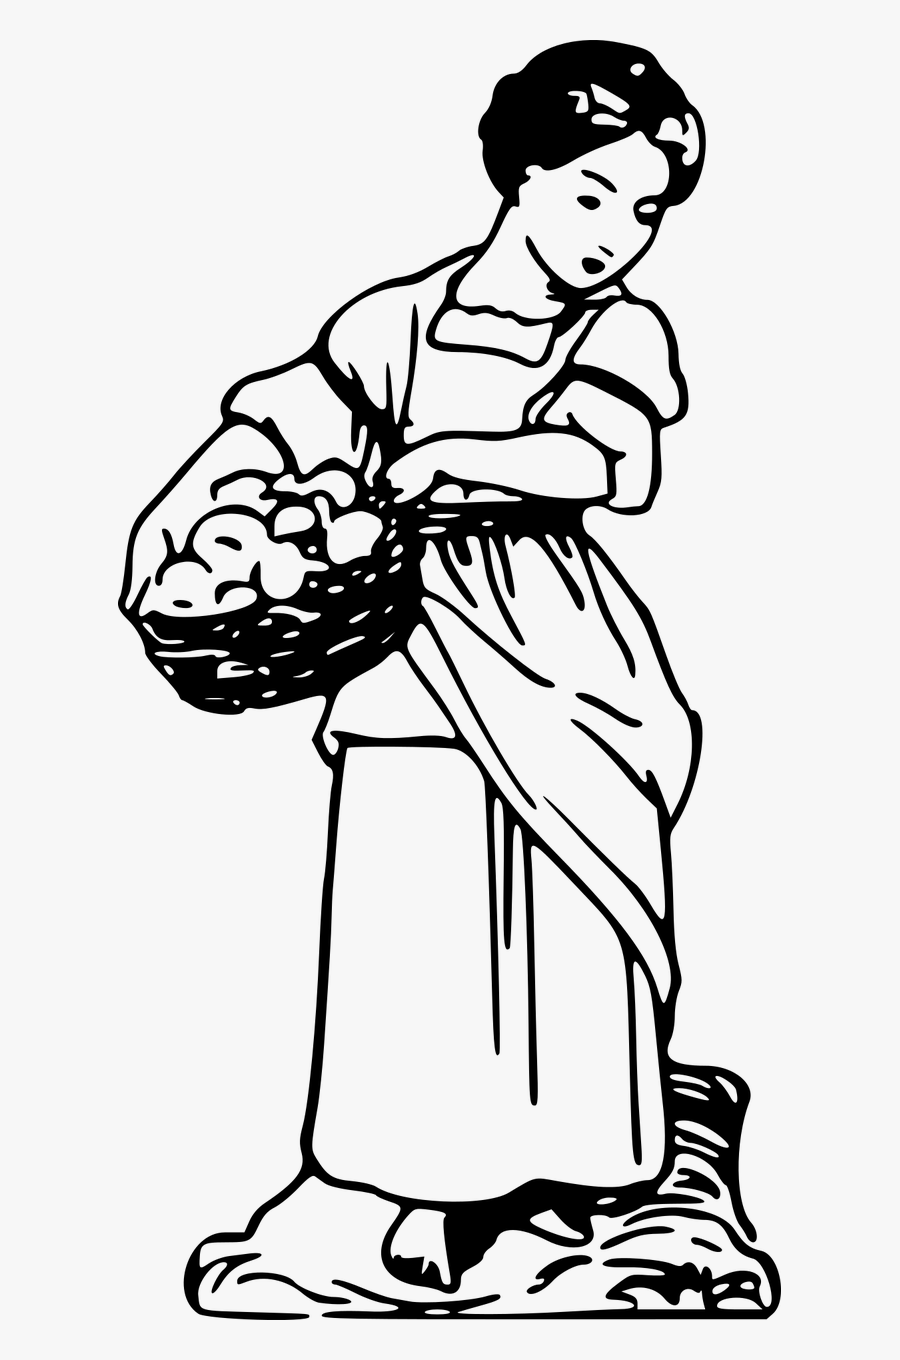 Basket Collect Collecting Free Picture - Mother Carrying Basket In The Market Line Art Image, Transparent Clipart